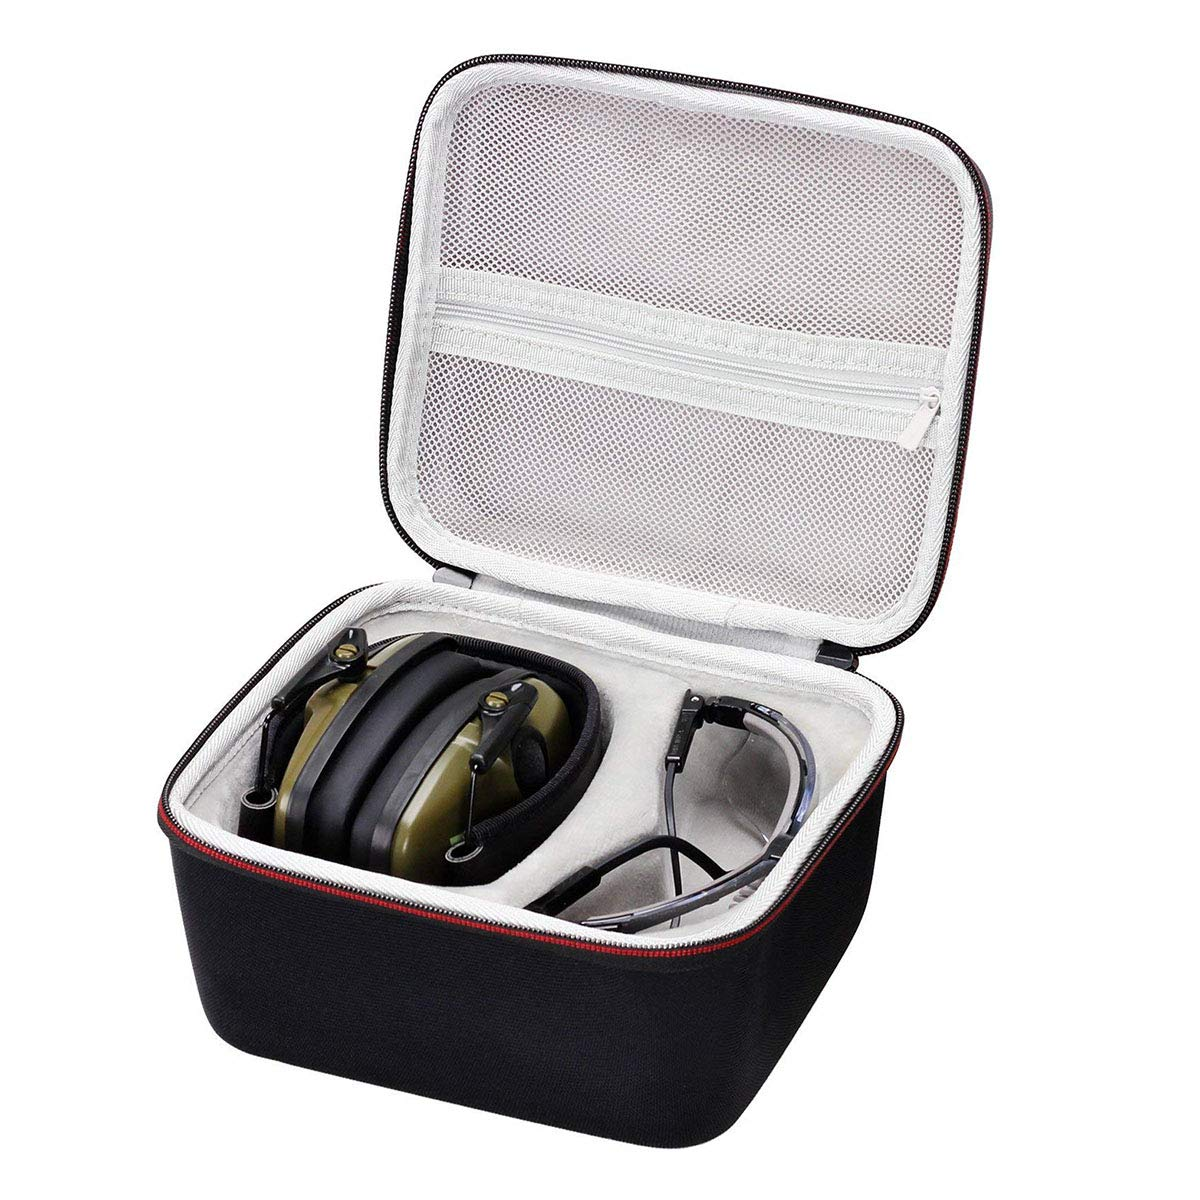 Asafez Hard Case for Howard Leight Honeywell Impact Sport Sound Amplification Electronic Shooting Earmuff and Genesis Sharp-Shooter Shooting Glasses